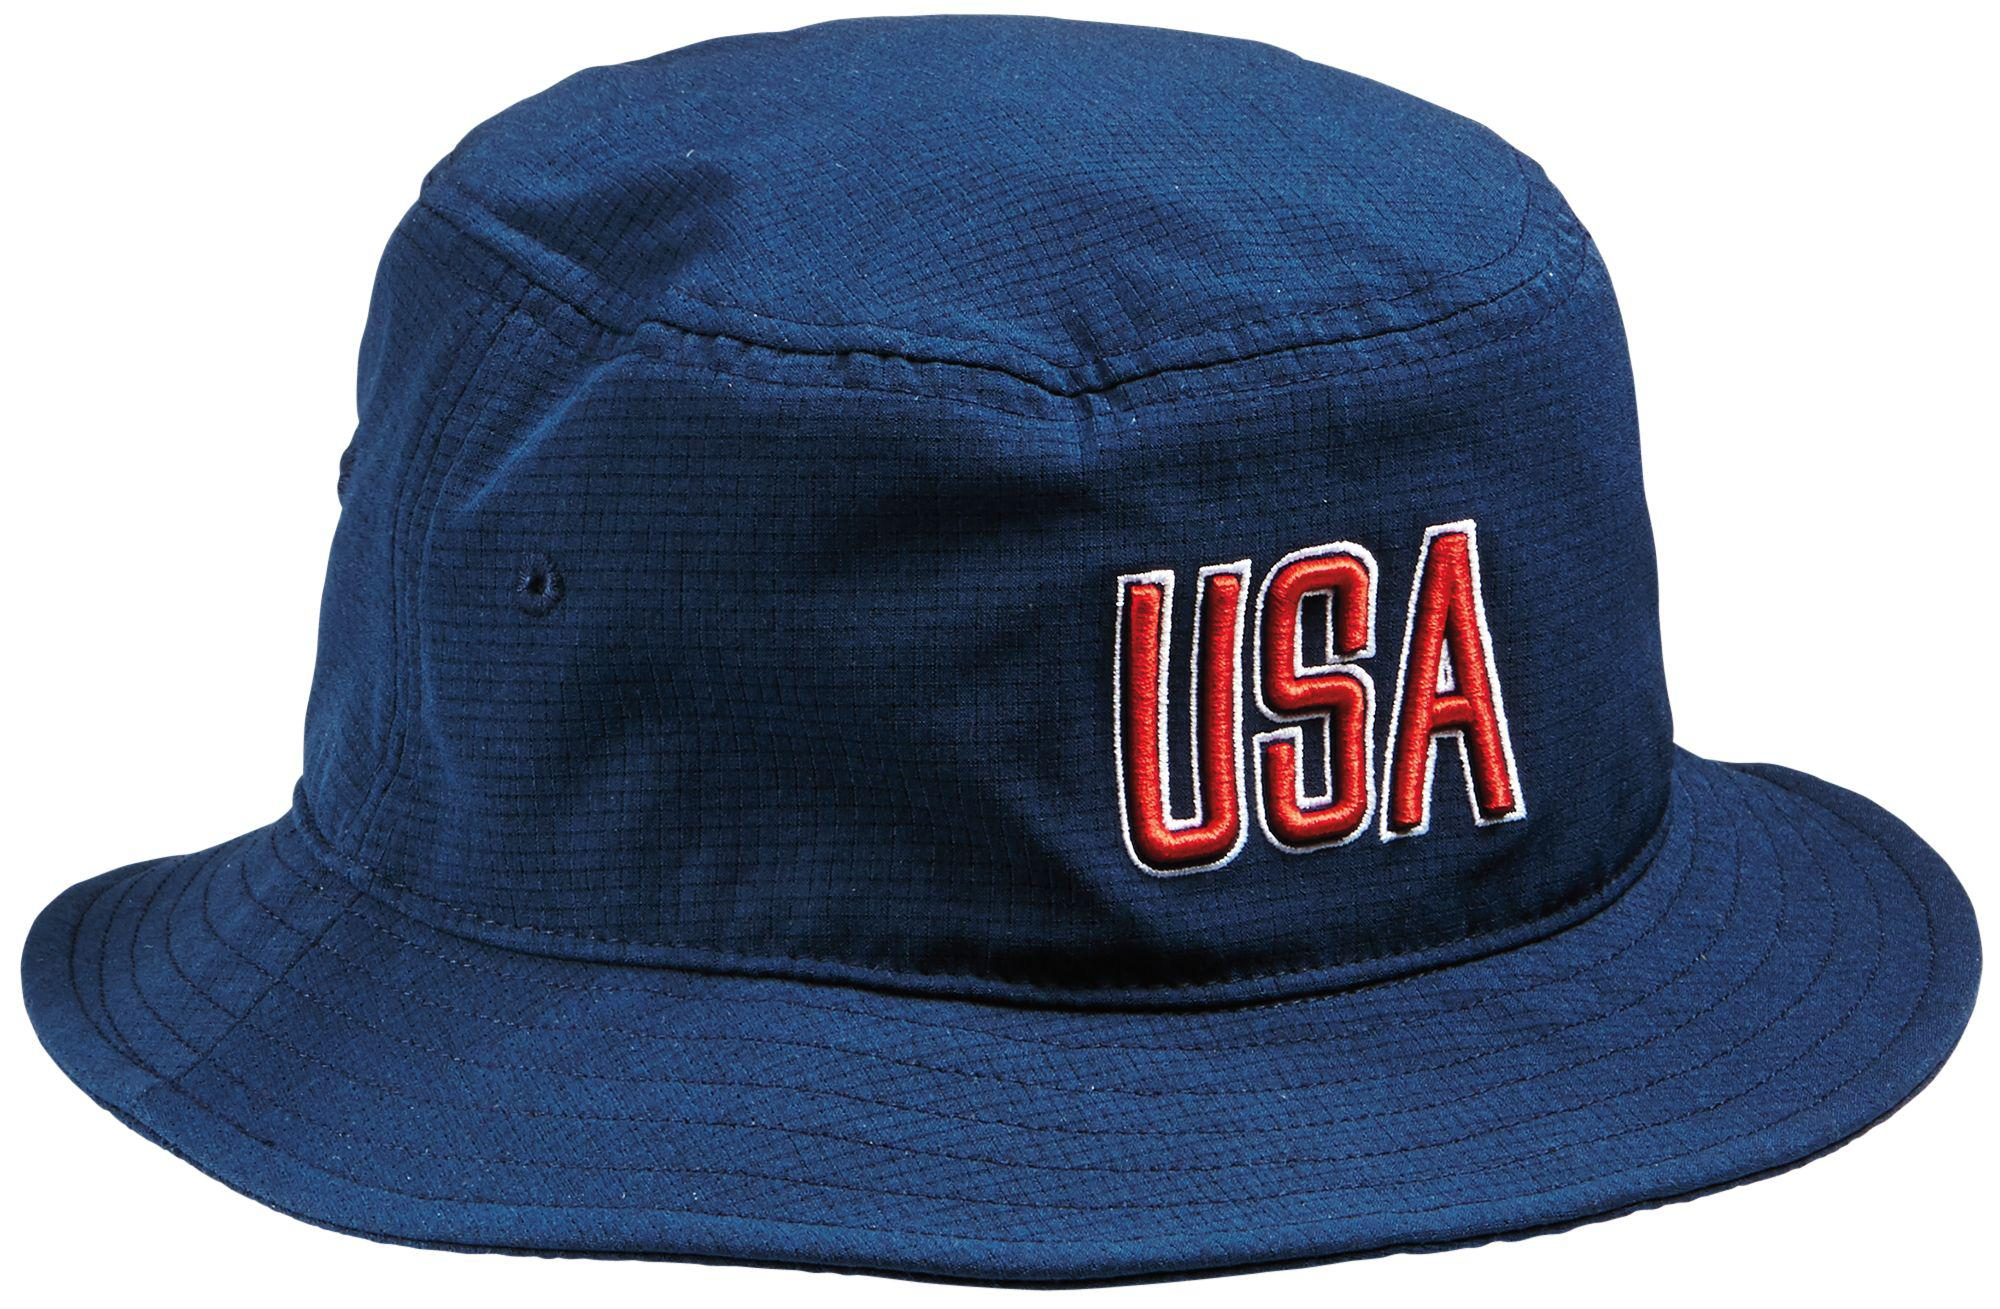 d87282d58f5 ... france lyst under armour armourvent usa bucket hat in blue for men  549f9 aa64b